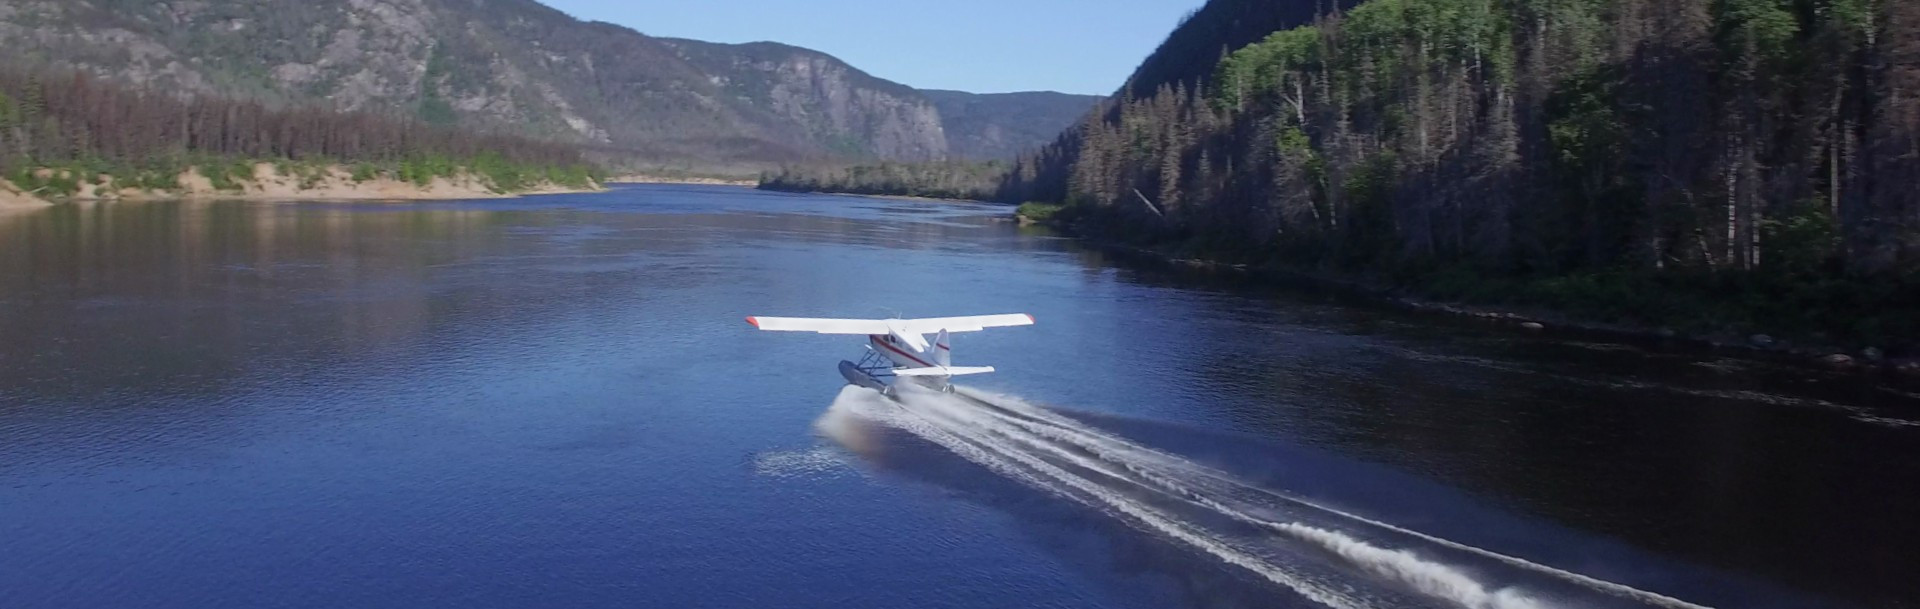 A float plane taking off